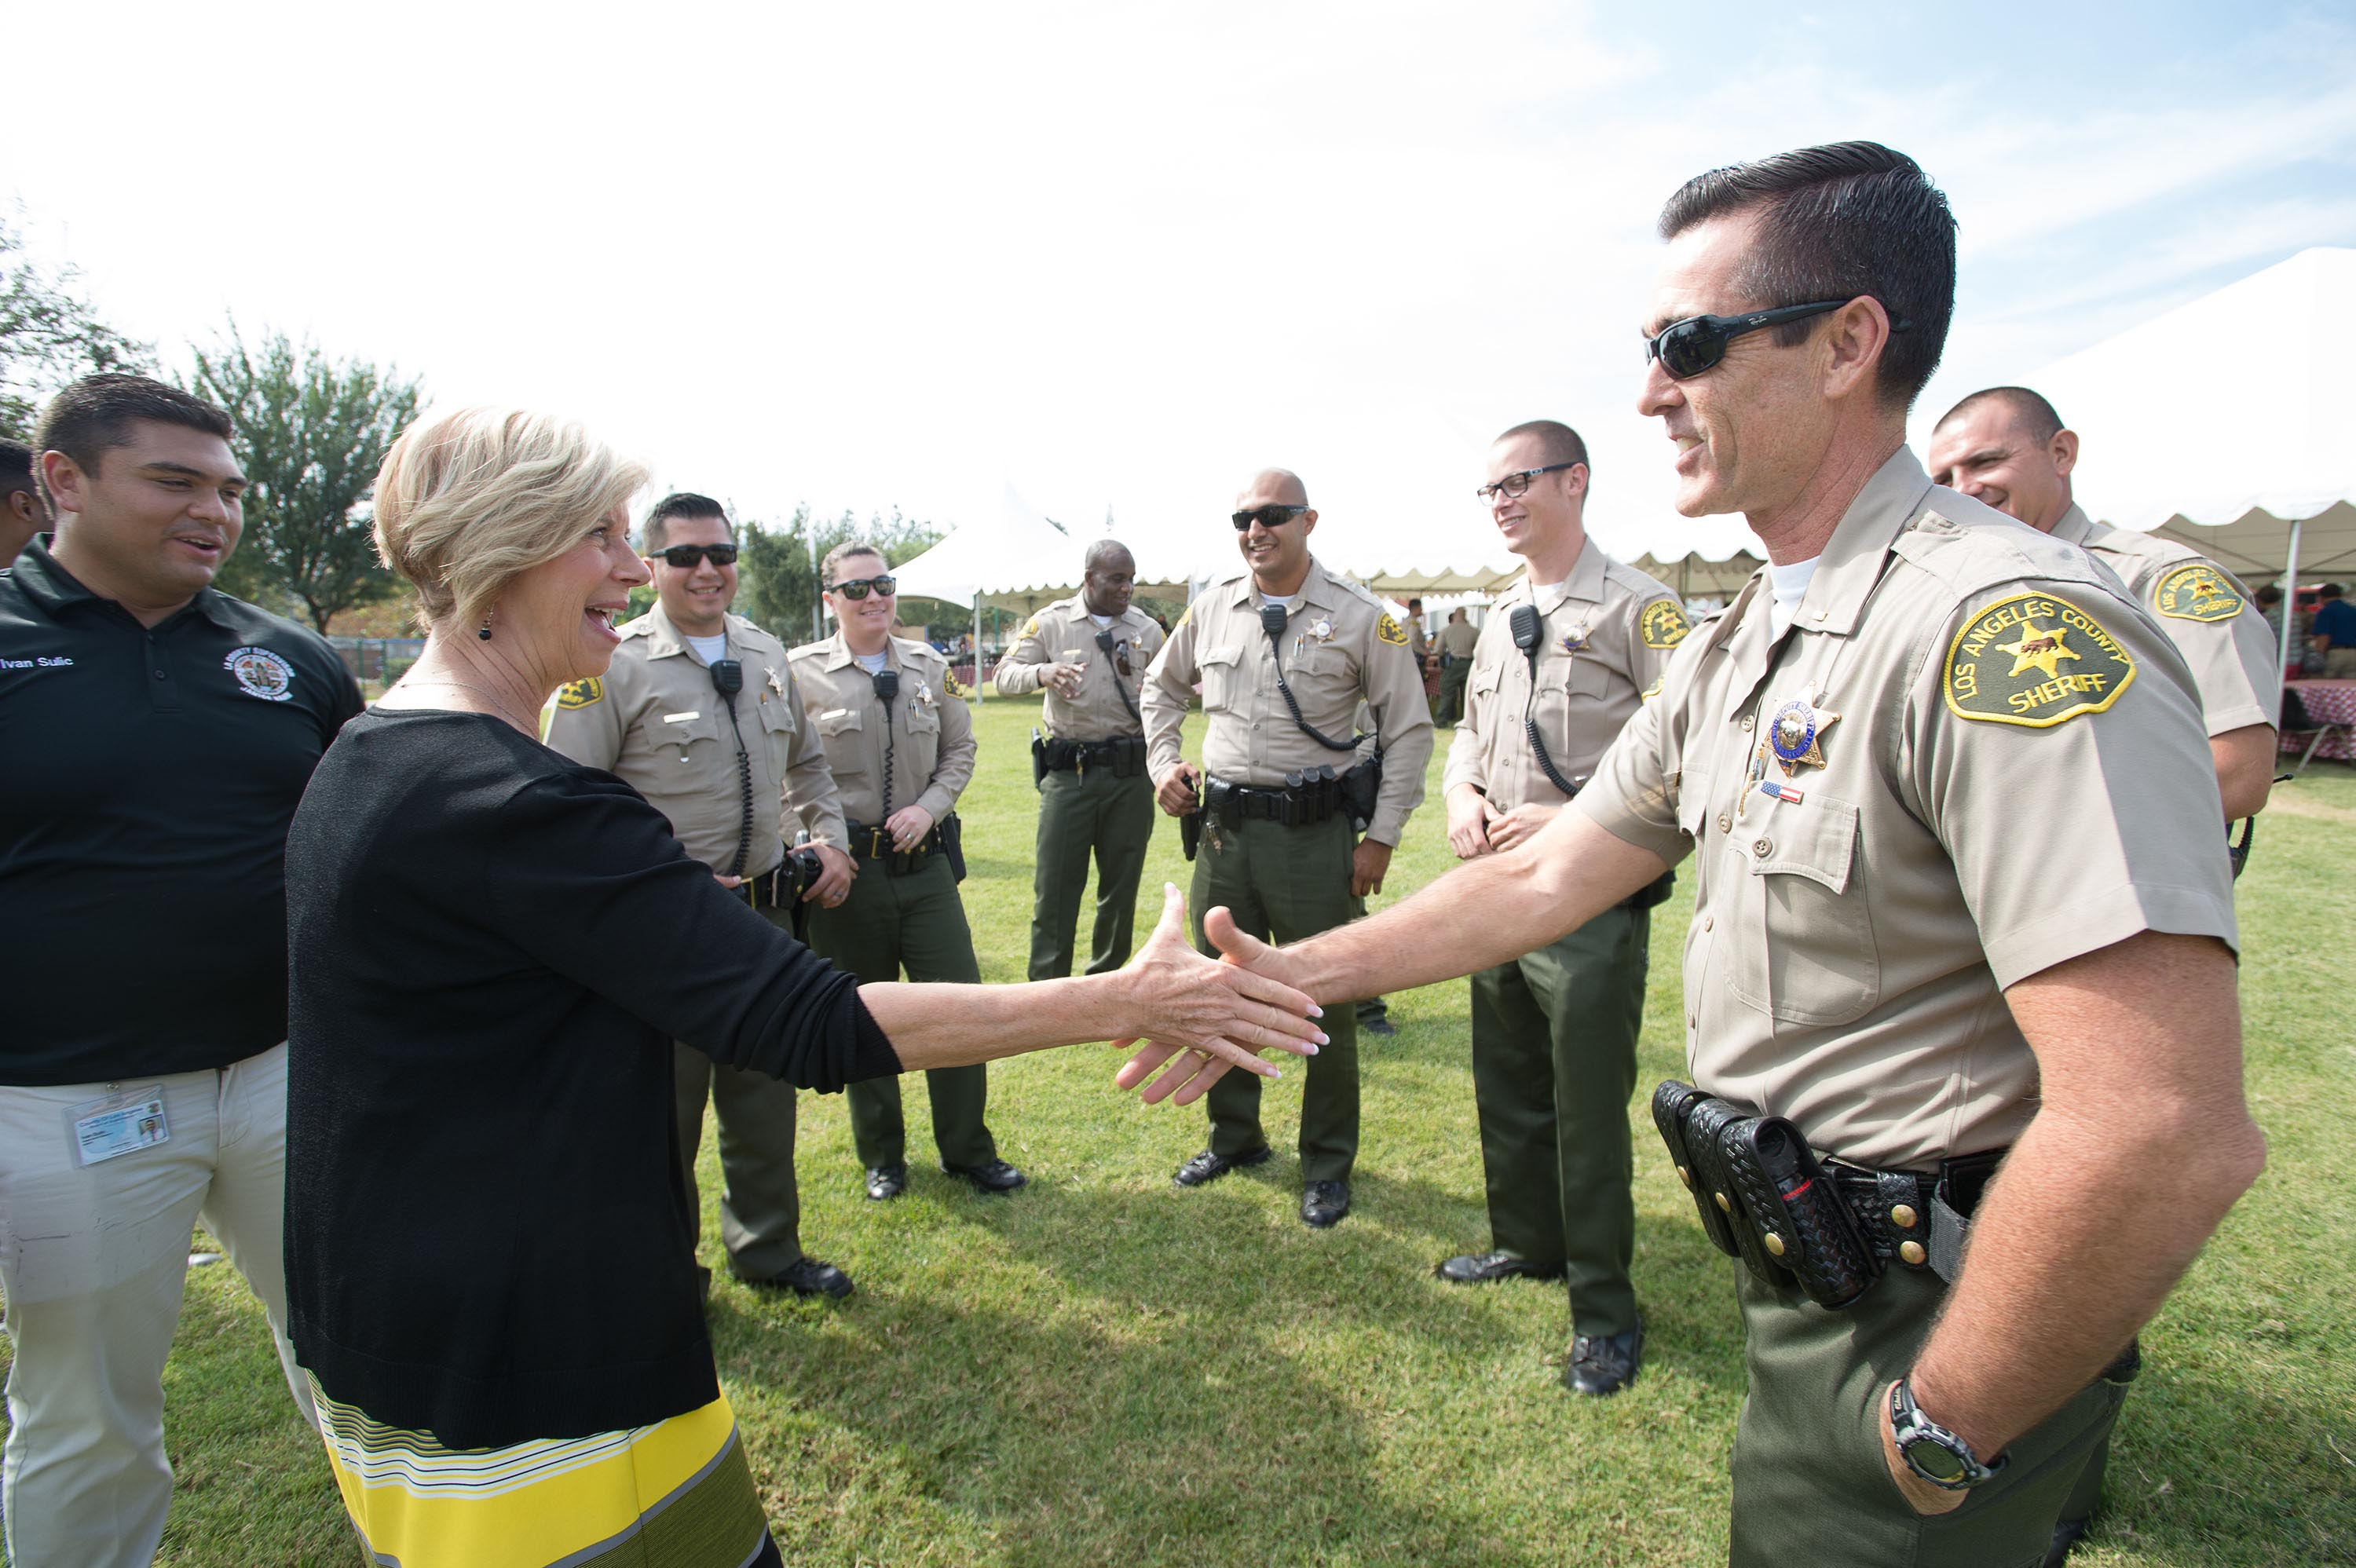 District 4 – Supervisor Janice Hahn<br>  <b>Oct. 19, 2017 – Public Safety Appreciation BBQ.</b><br><i>Photo by Bryan Chan / Board of Supervisors</i>